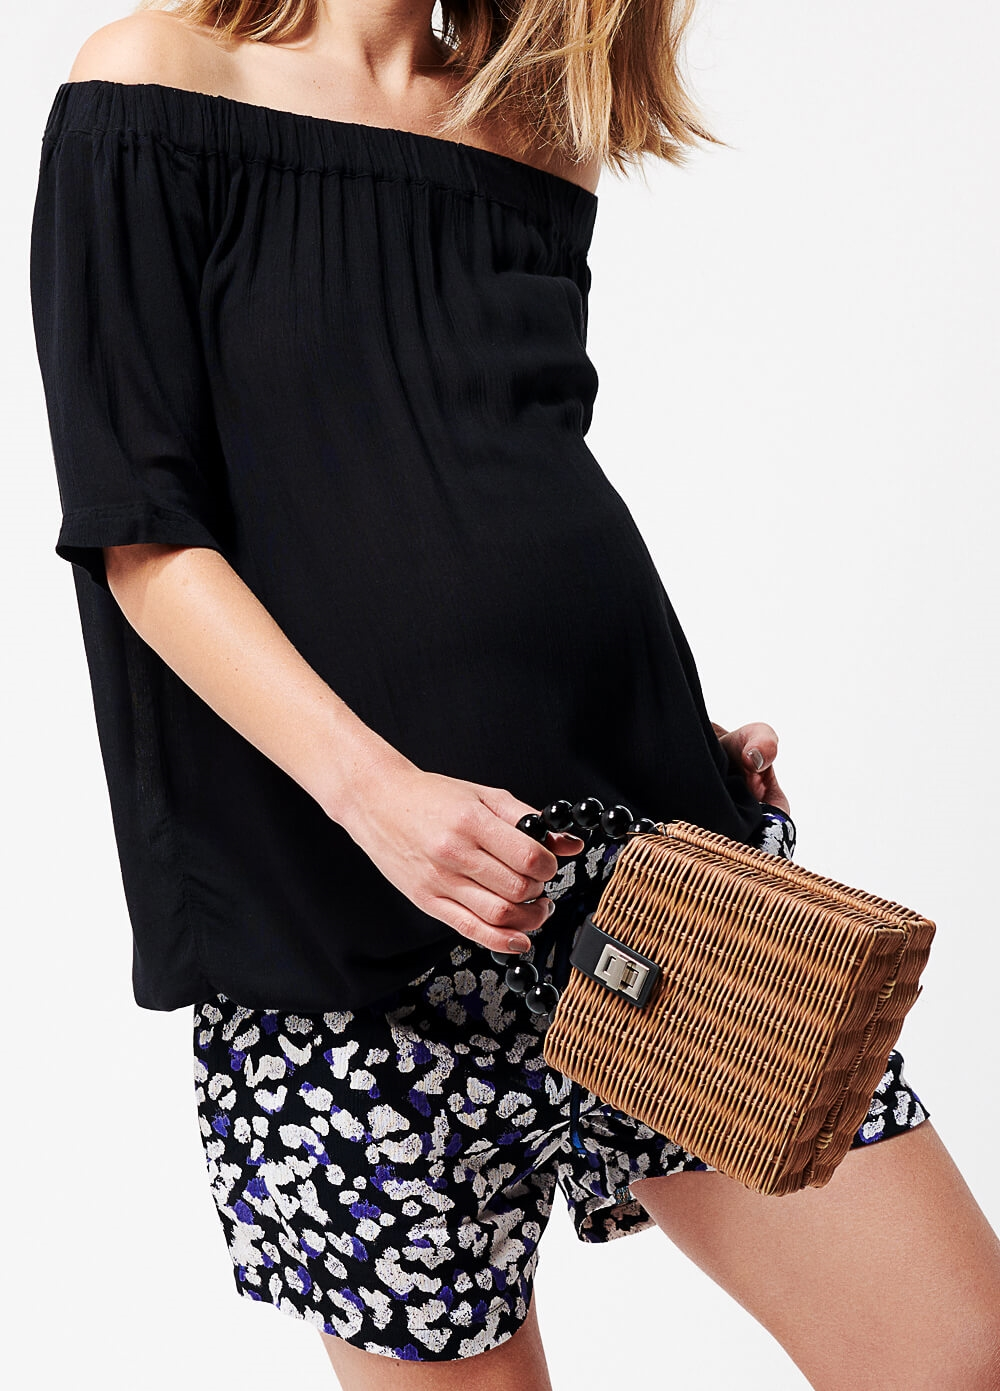 Supermom - Monaco Print Summer Maternity Shorts | Queen Bee